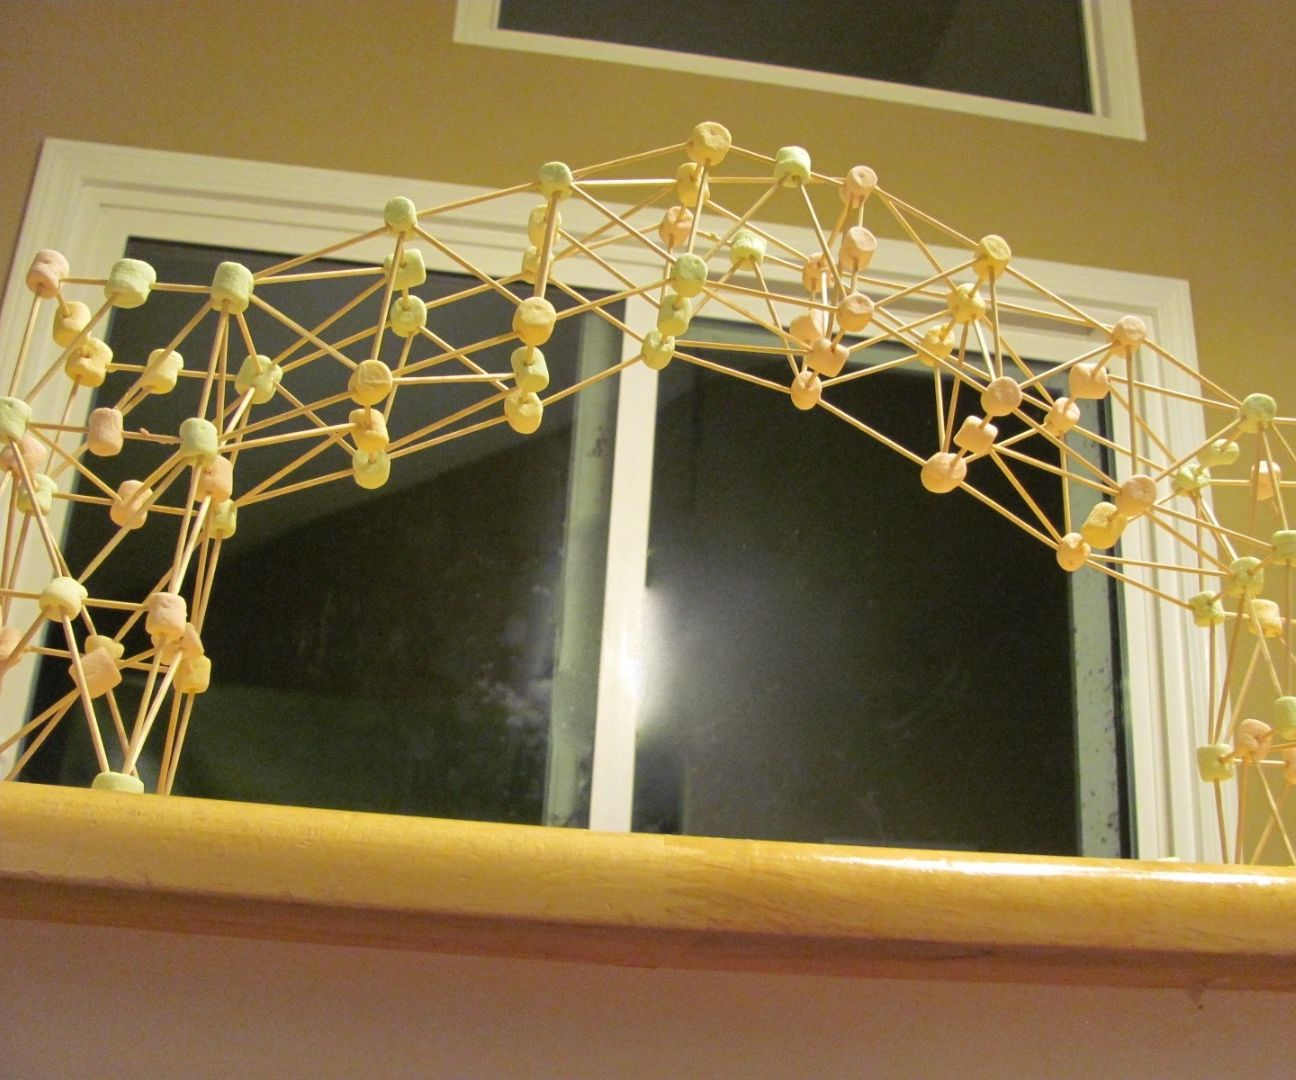 Marshmallow Toothpick Structures 5 Steps Instructables